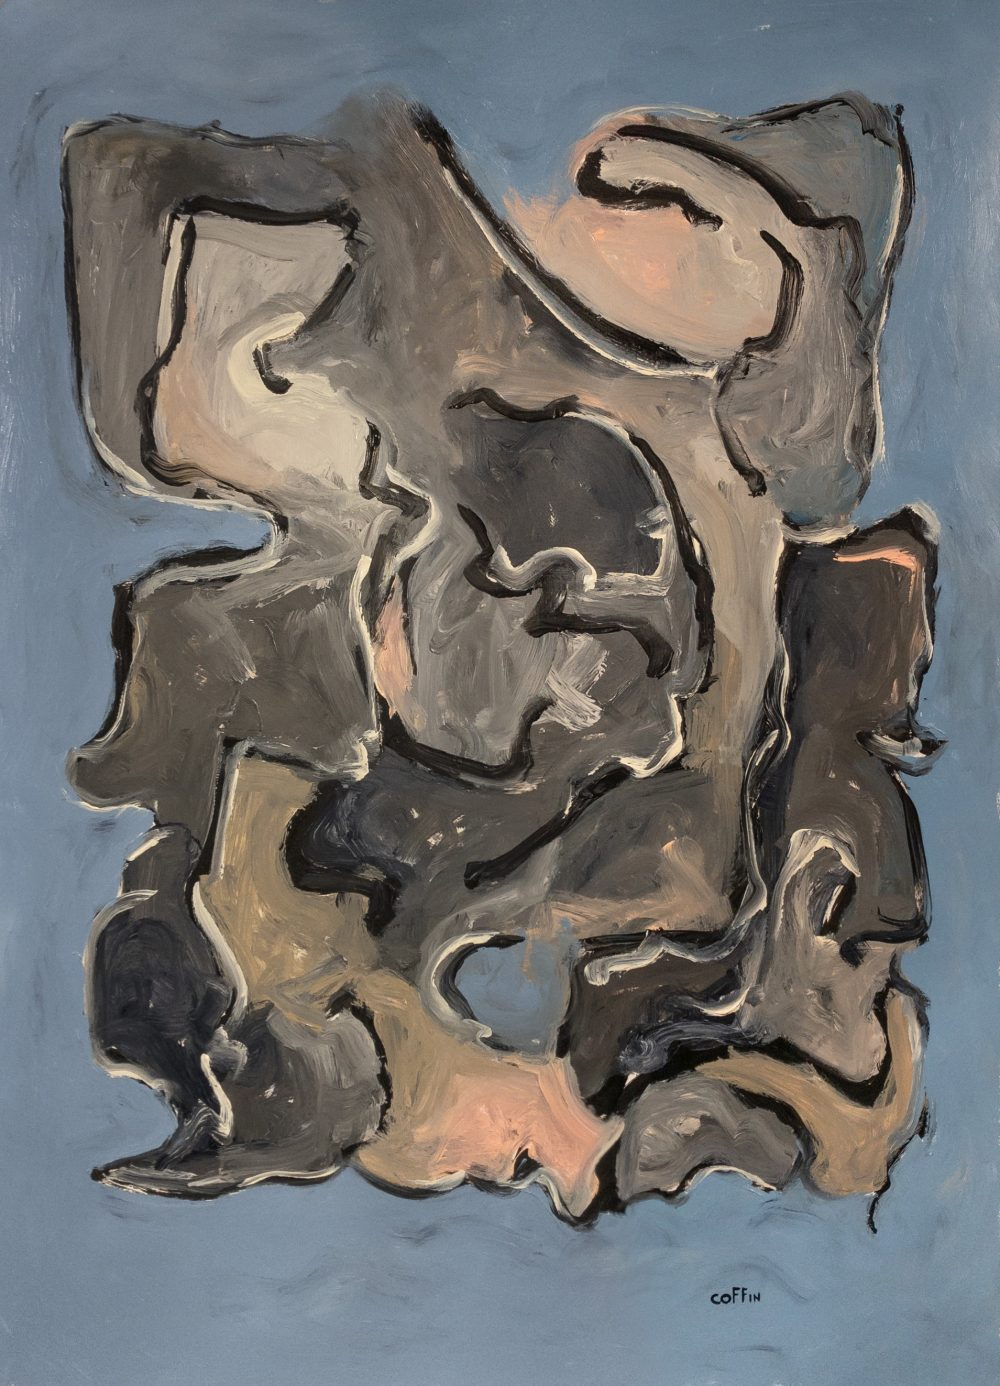 Untitled, 05/14/20 Acrylic on paper, 30 X 22 inches